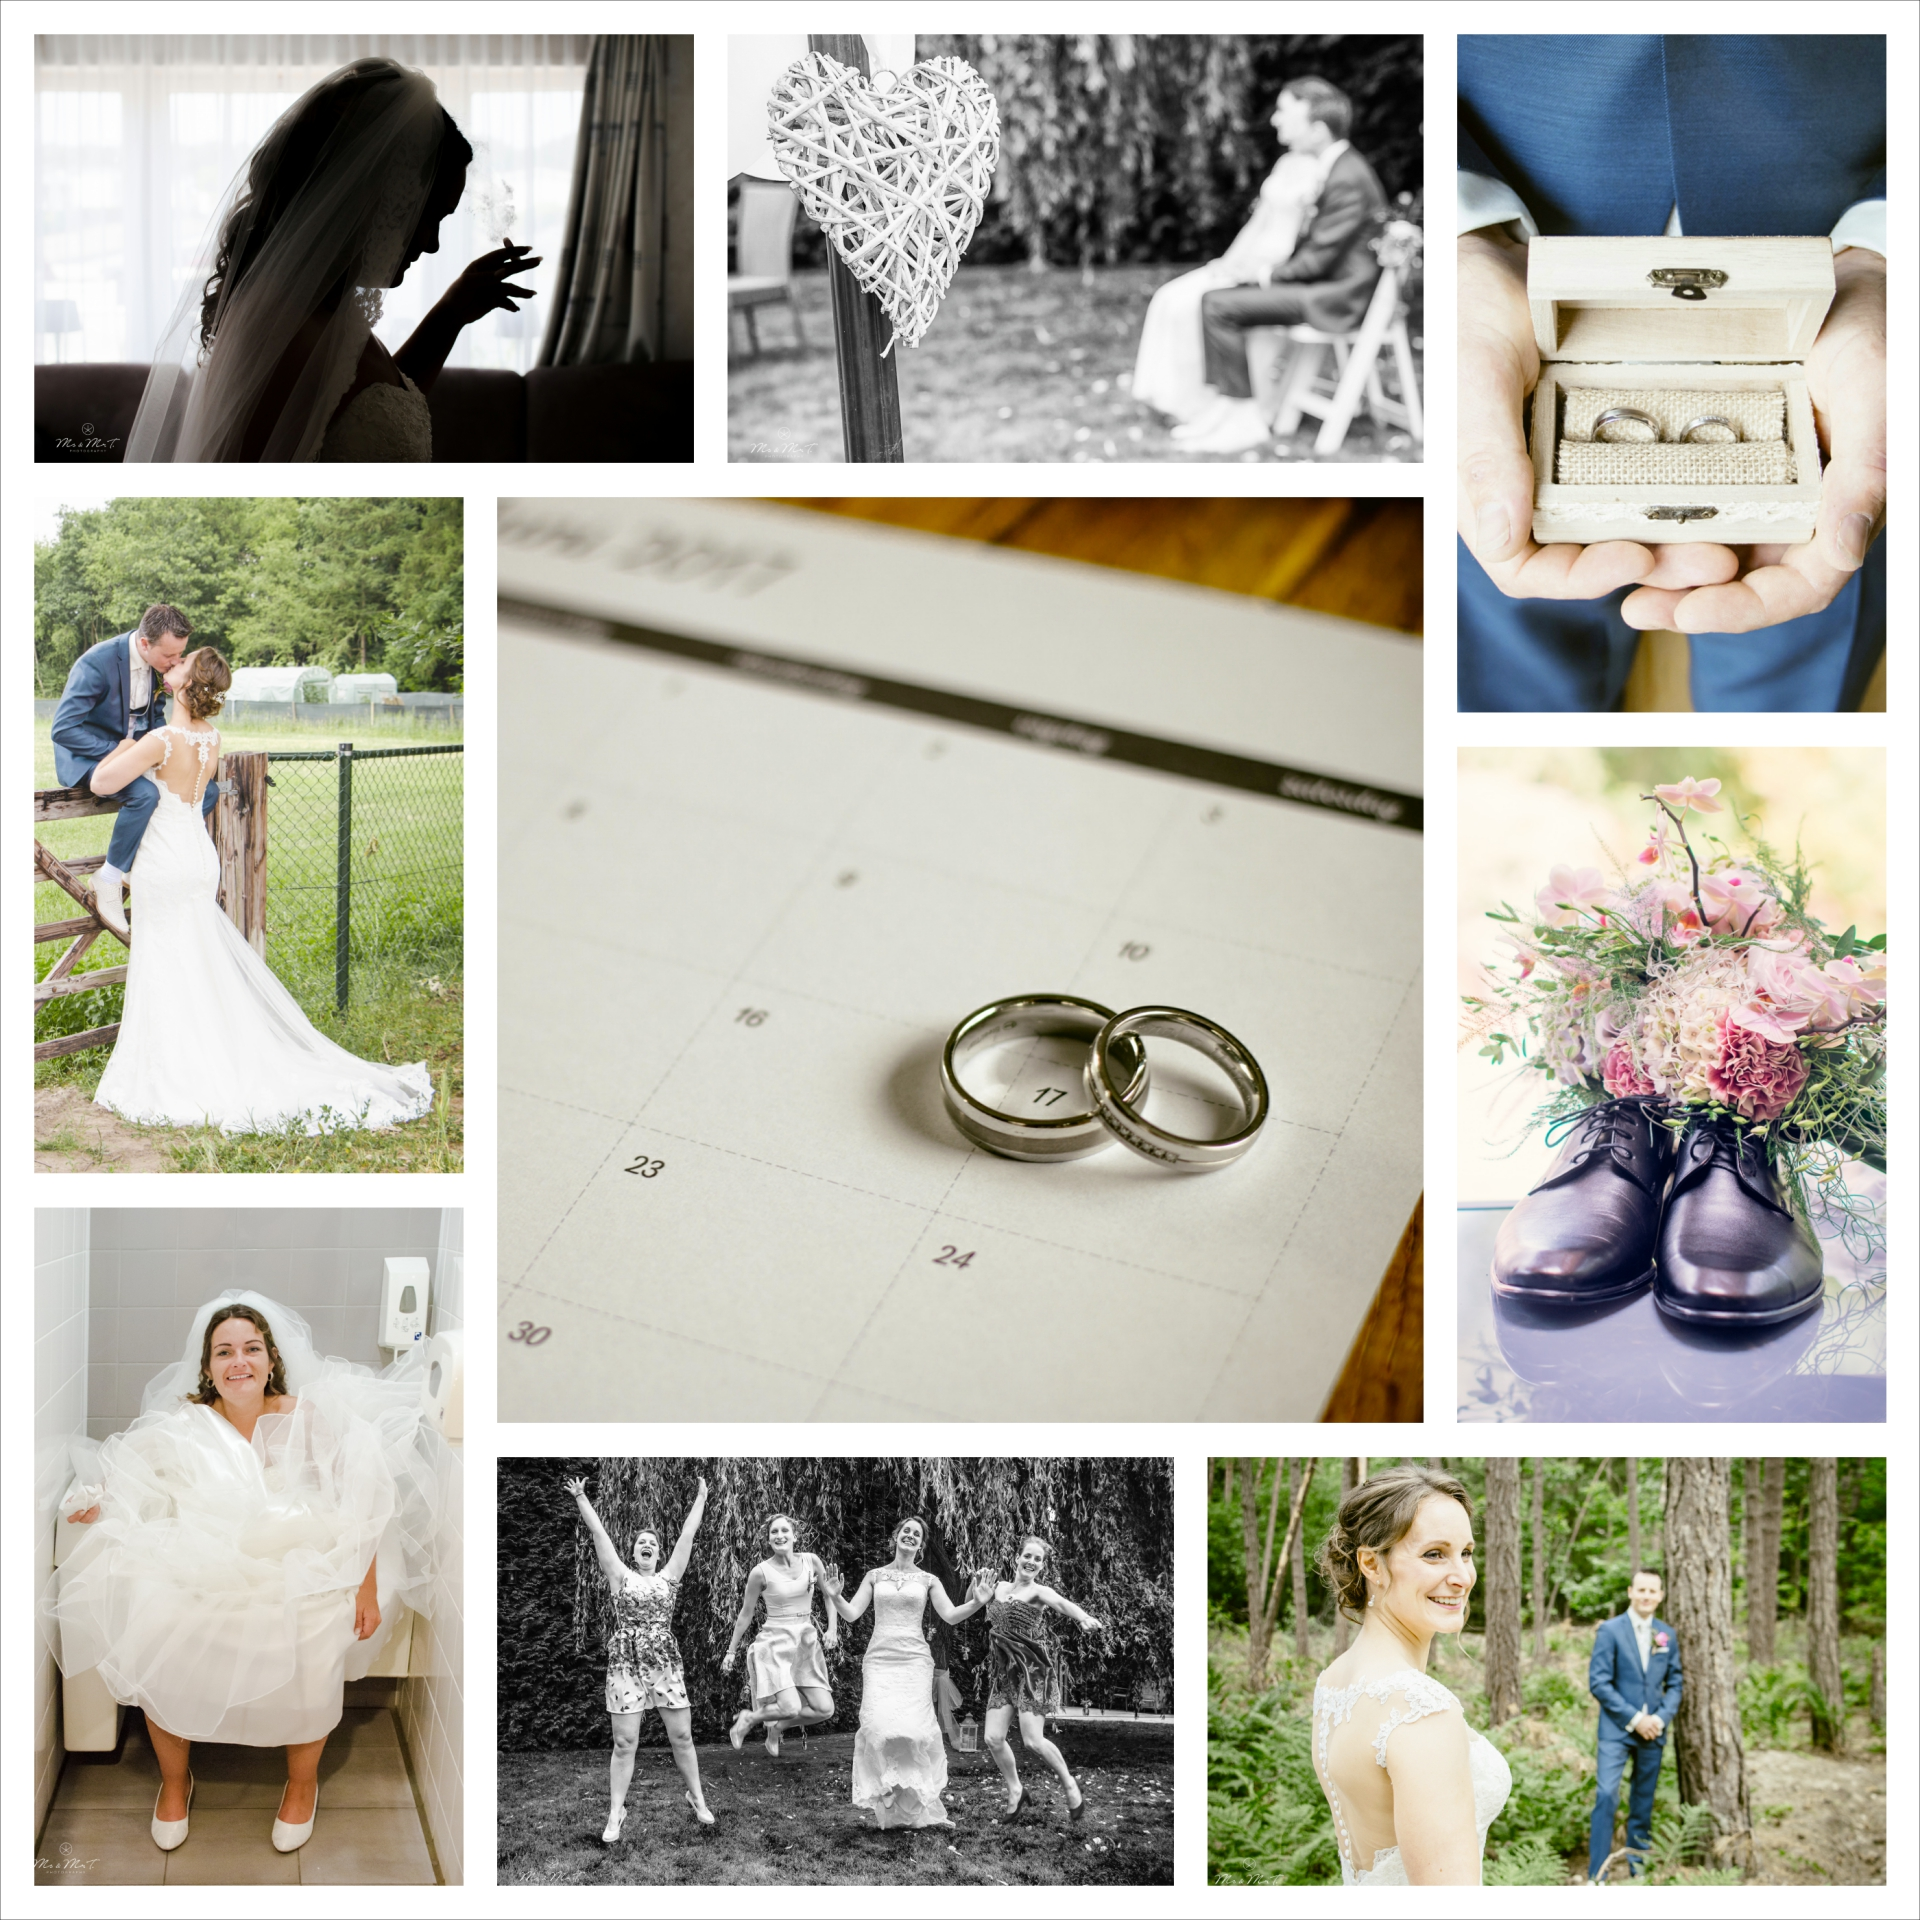 miss and mister t photography, pinterest, bruiloft, wedding, reportage, moodboard